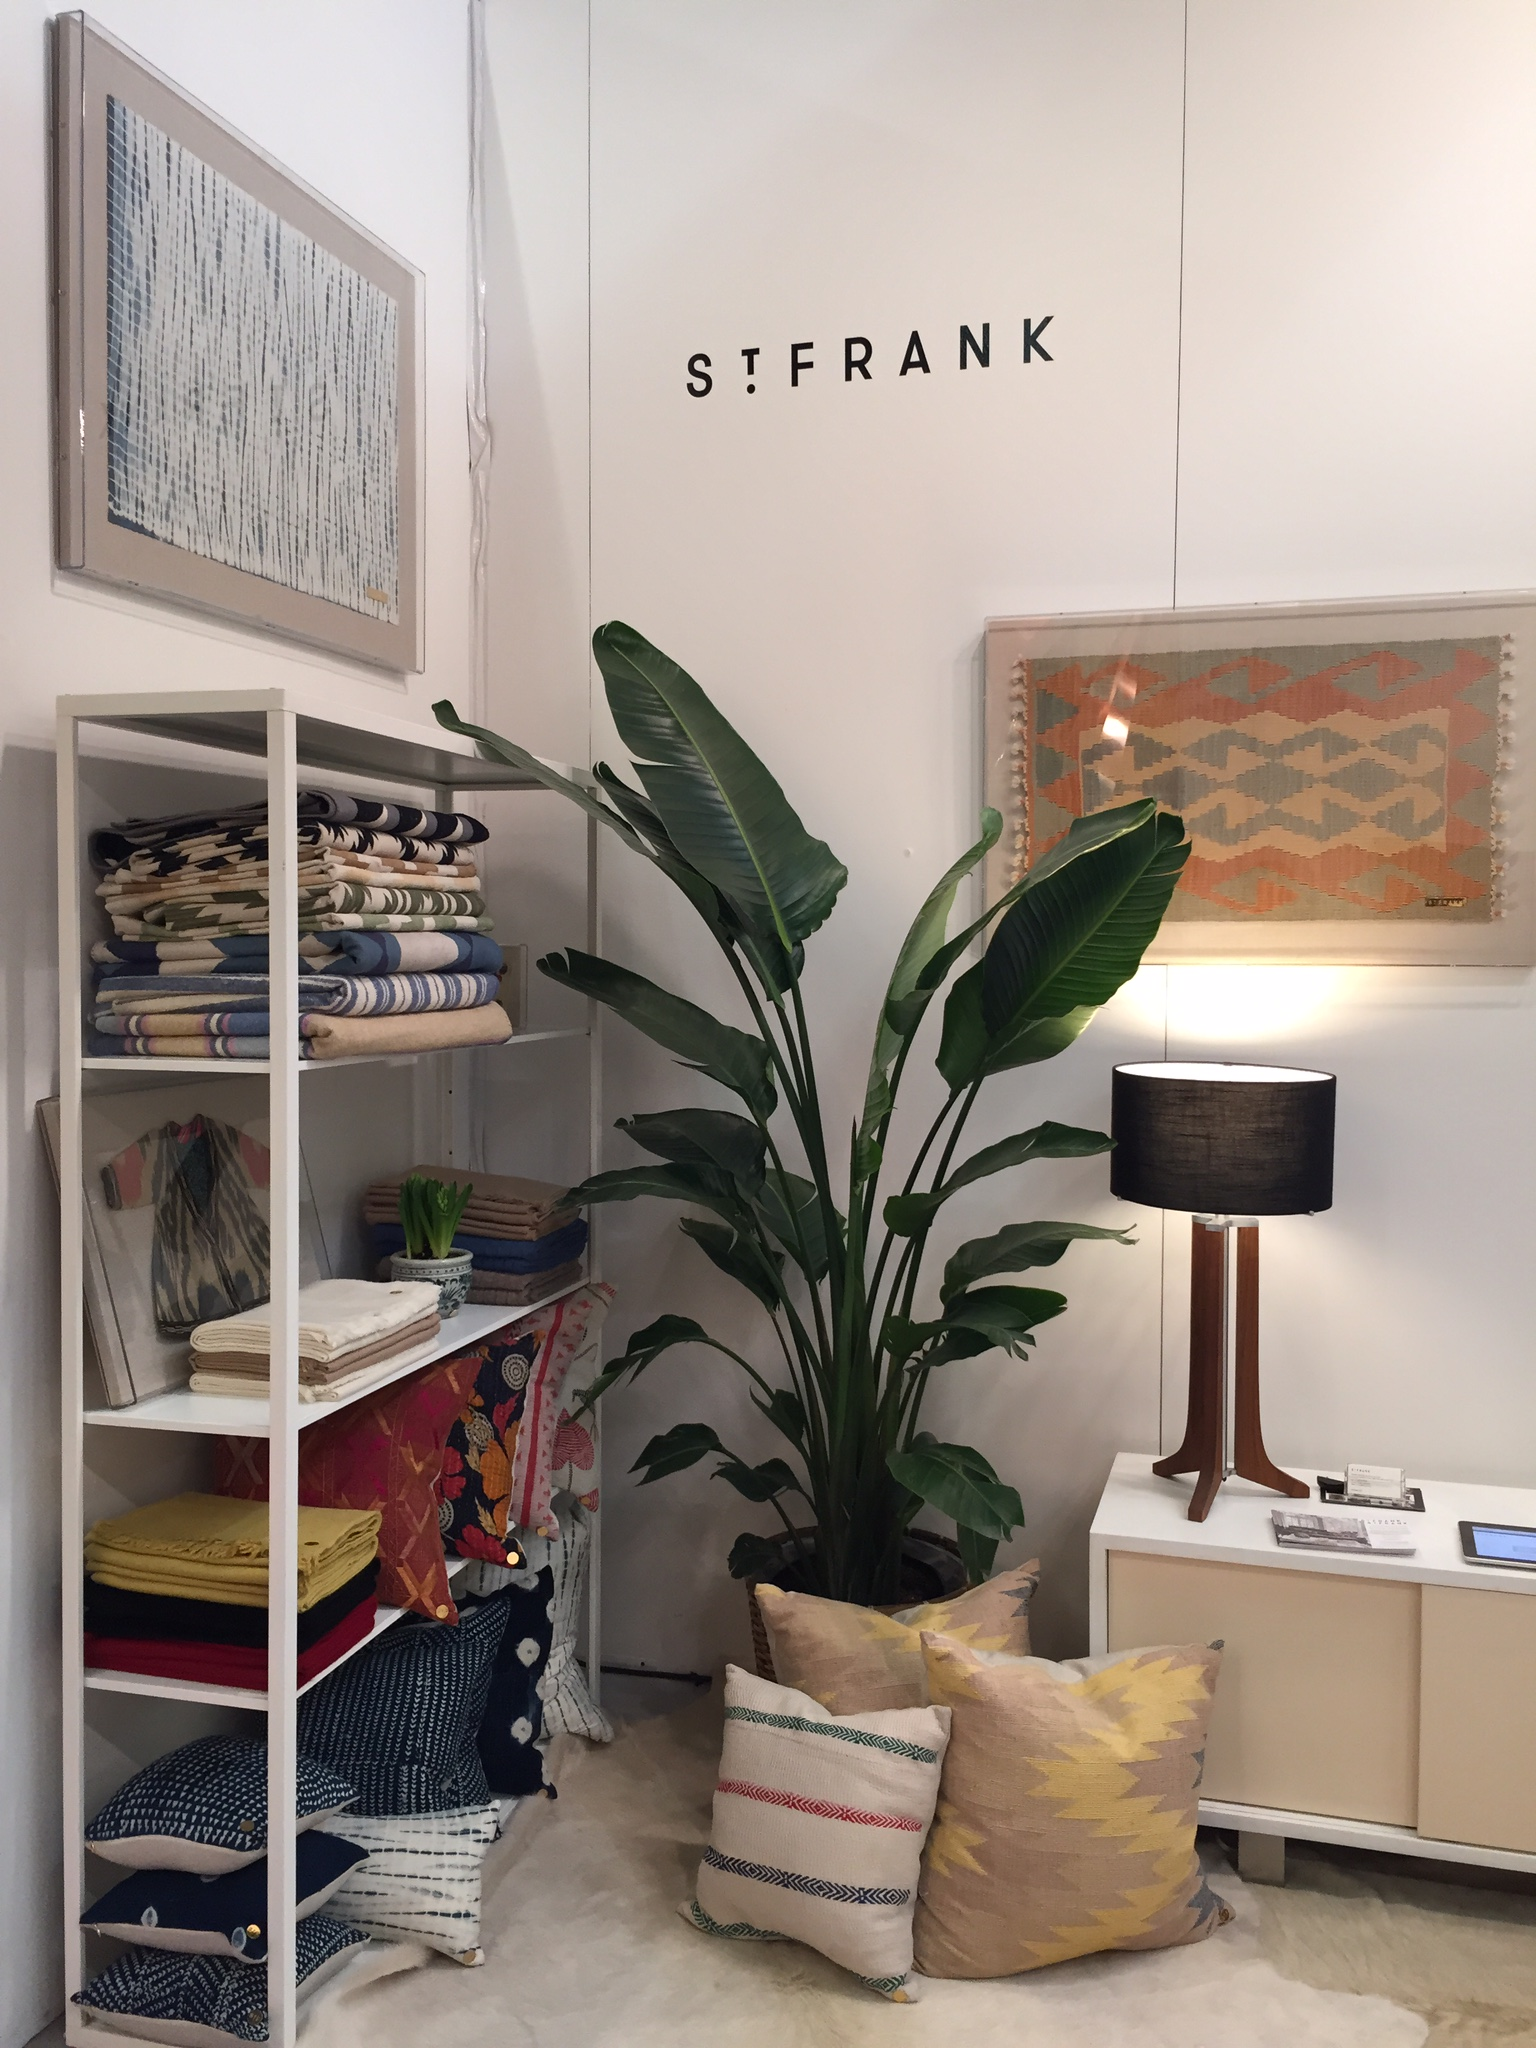 globalist textiles with a mission by St. Frank makes us passionate about responsible sourcing.